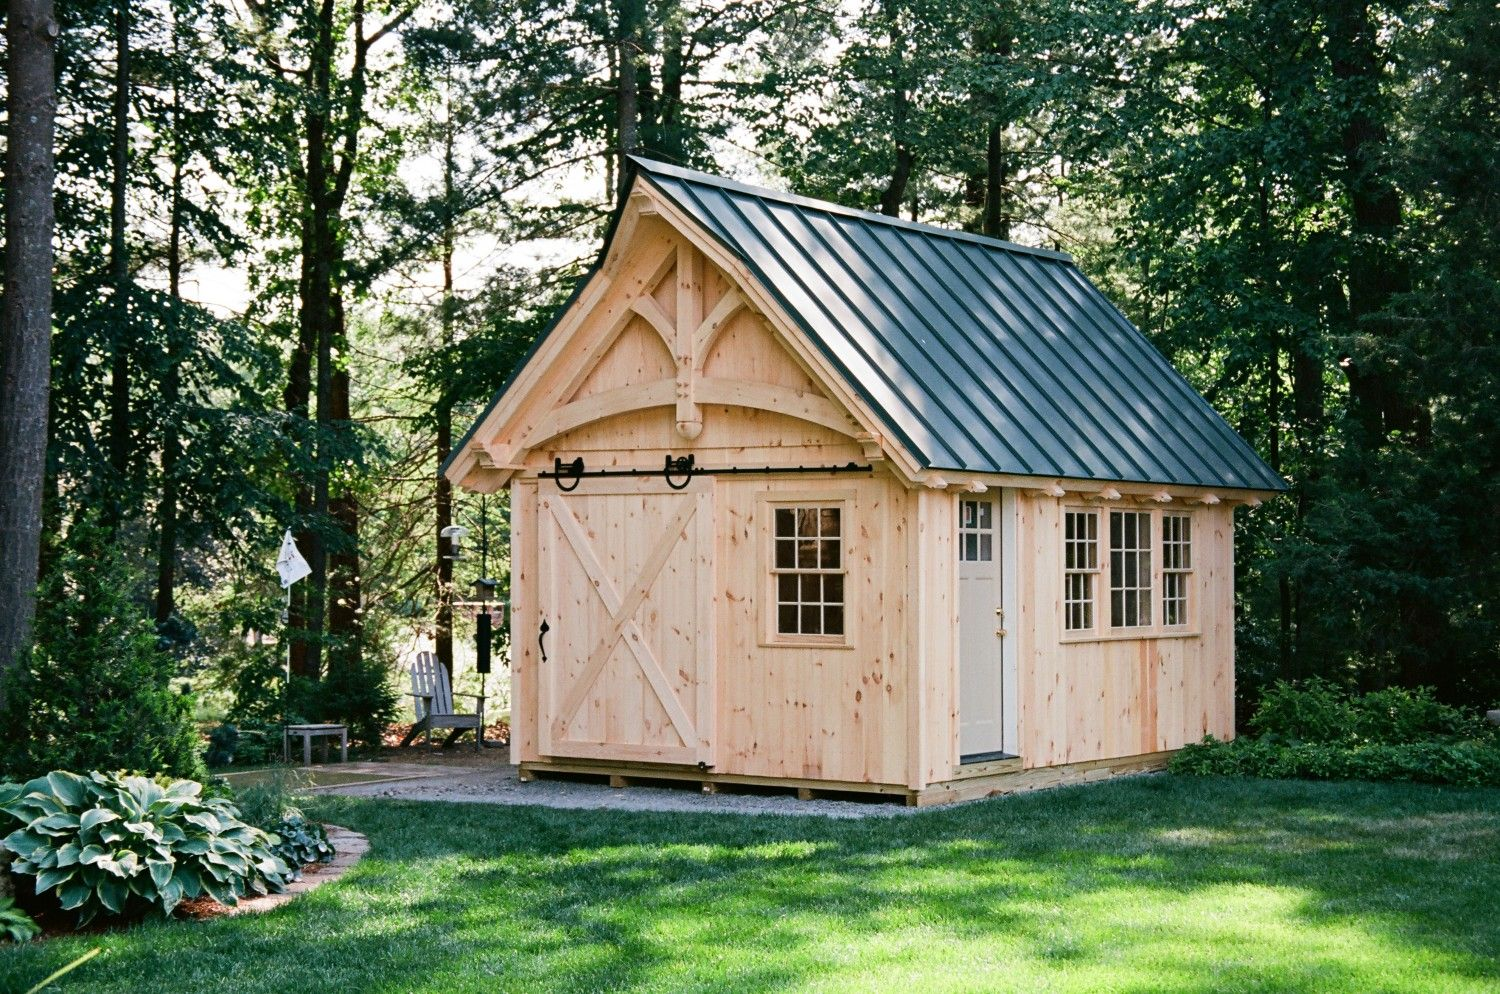 Grand Victorian Timber Frame Shed The Barn Yard Great Country Garages Victorian Sheds Diy Shed Plans Shed Design